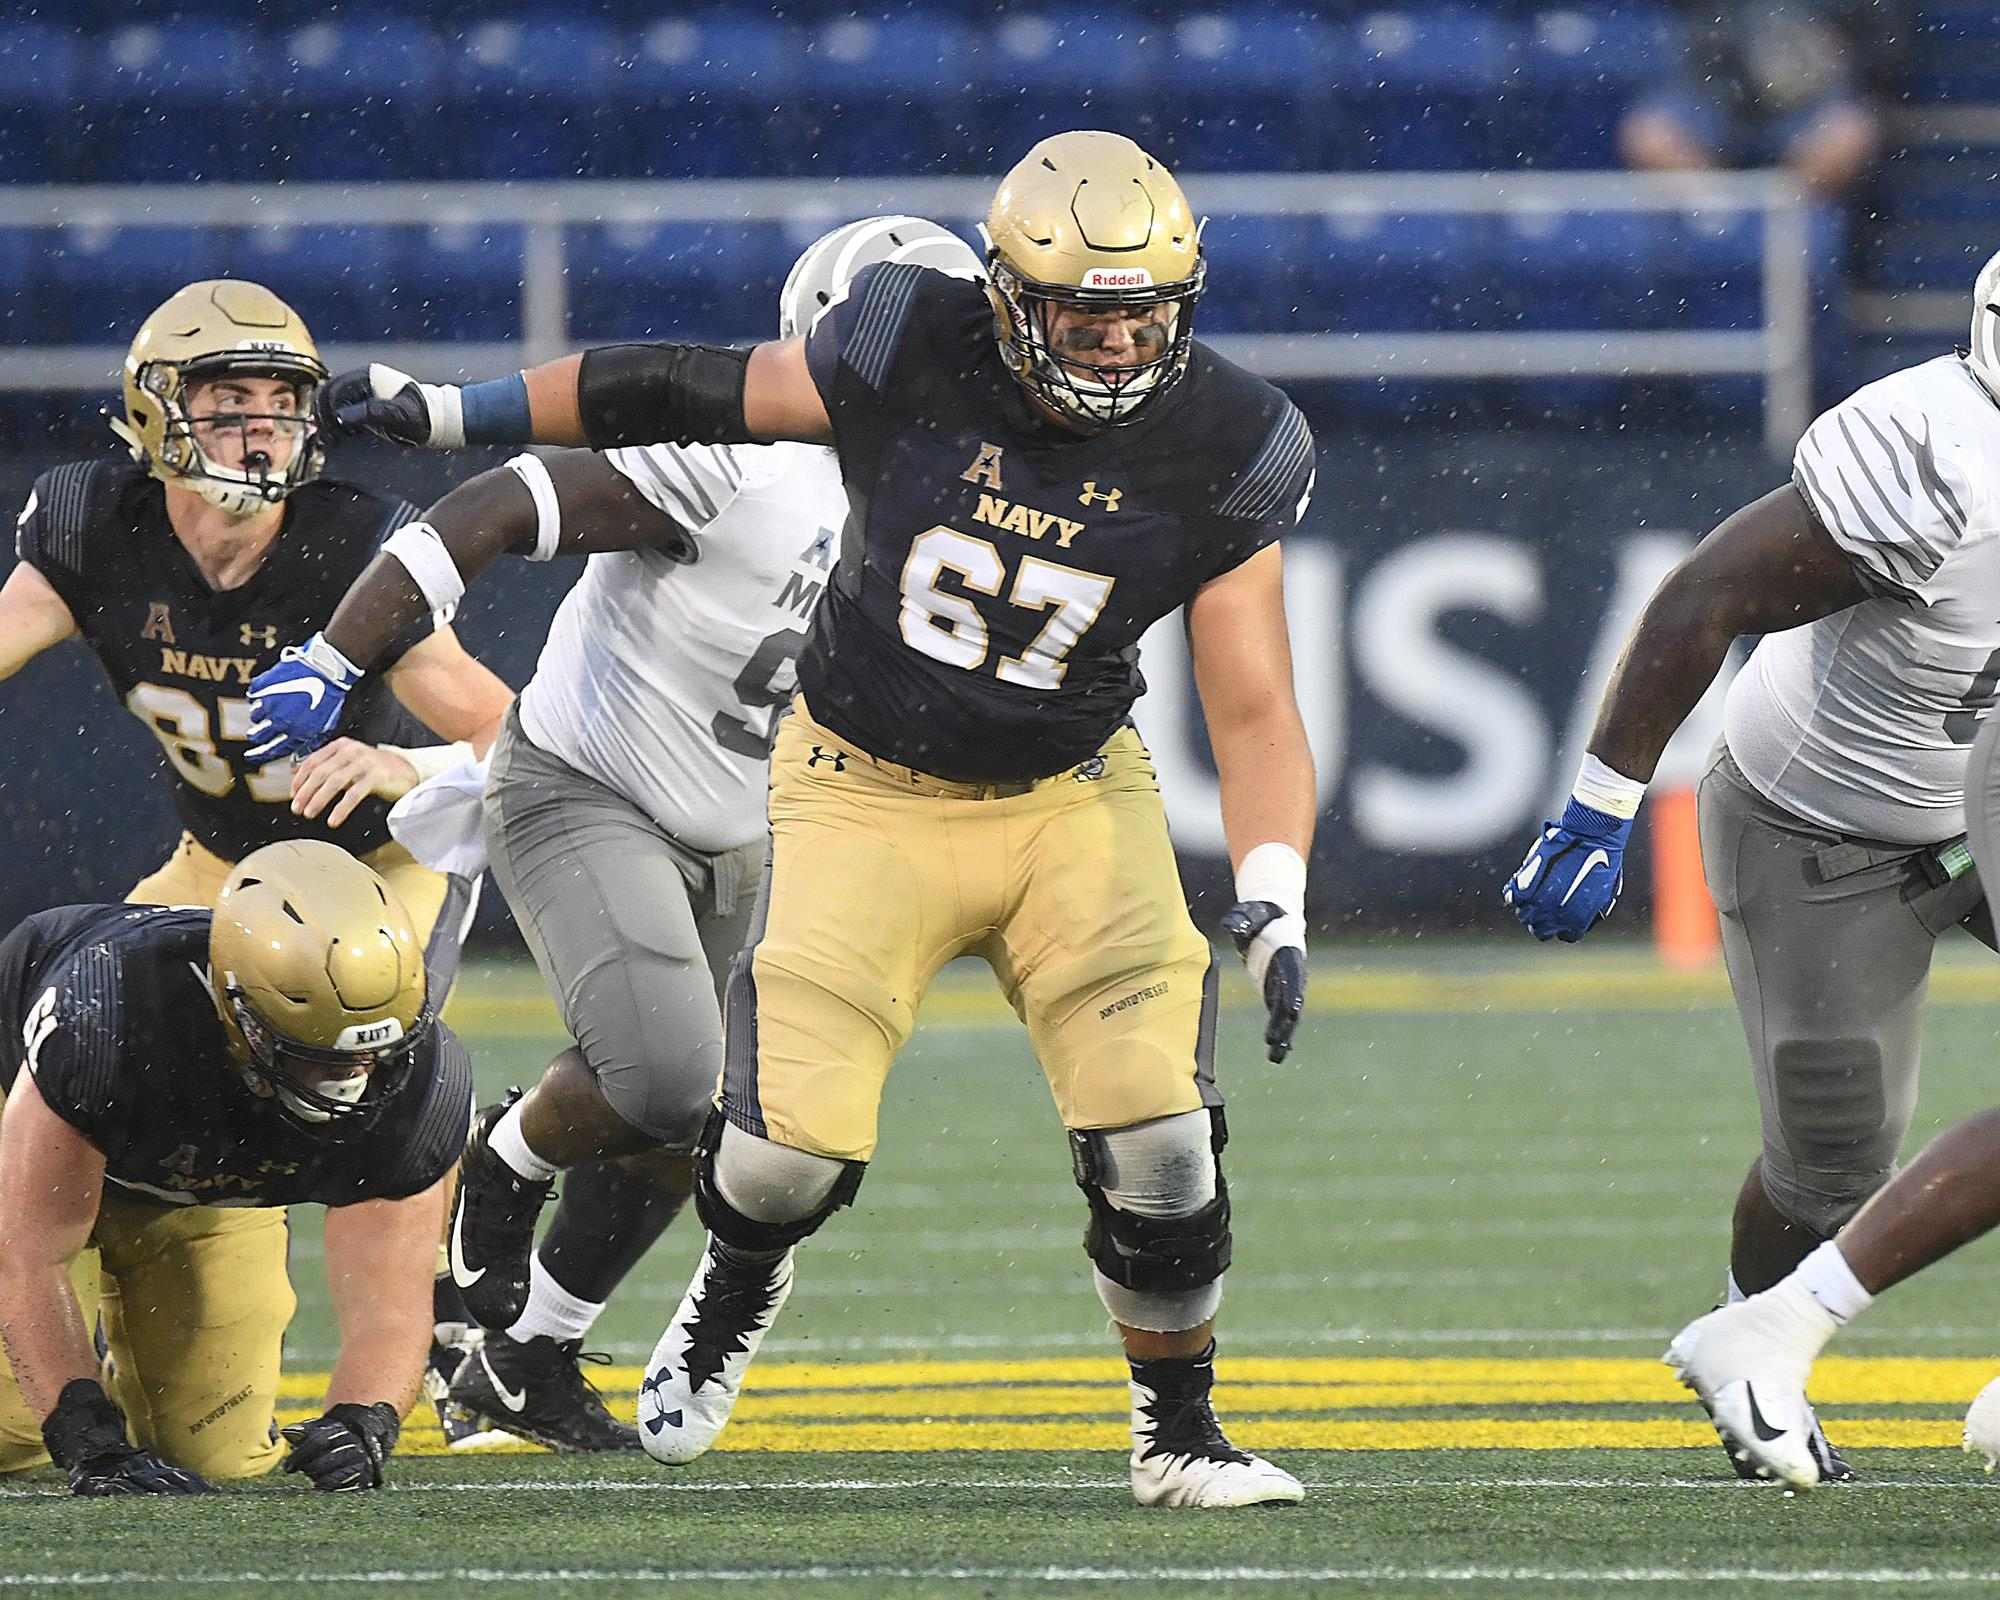 926f5b254 Ideal San Diego homecoming for Navy OL